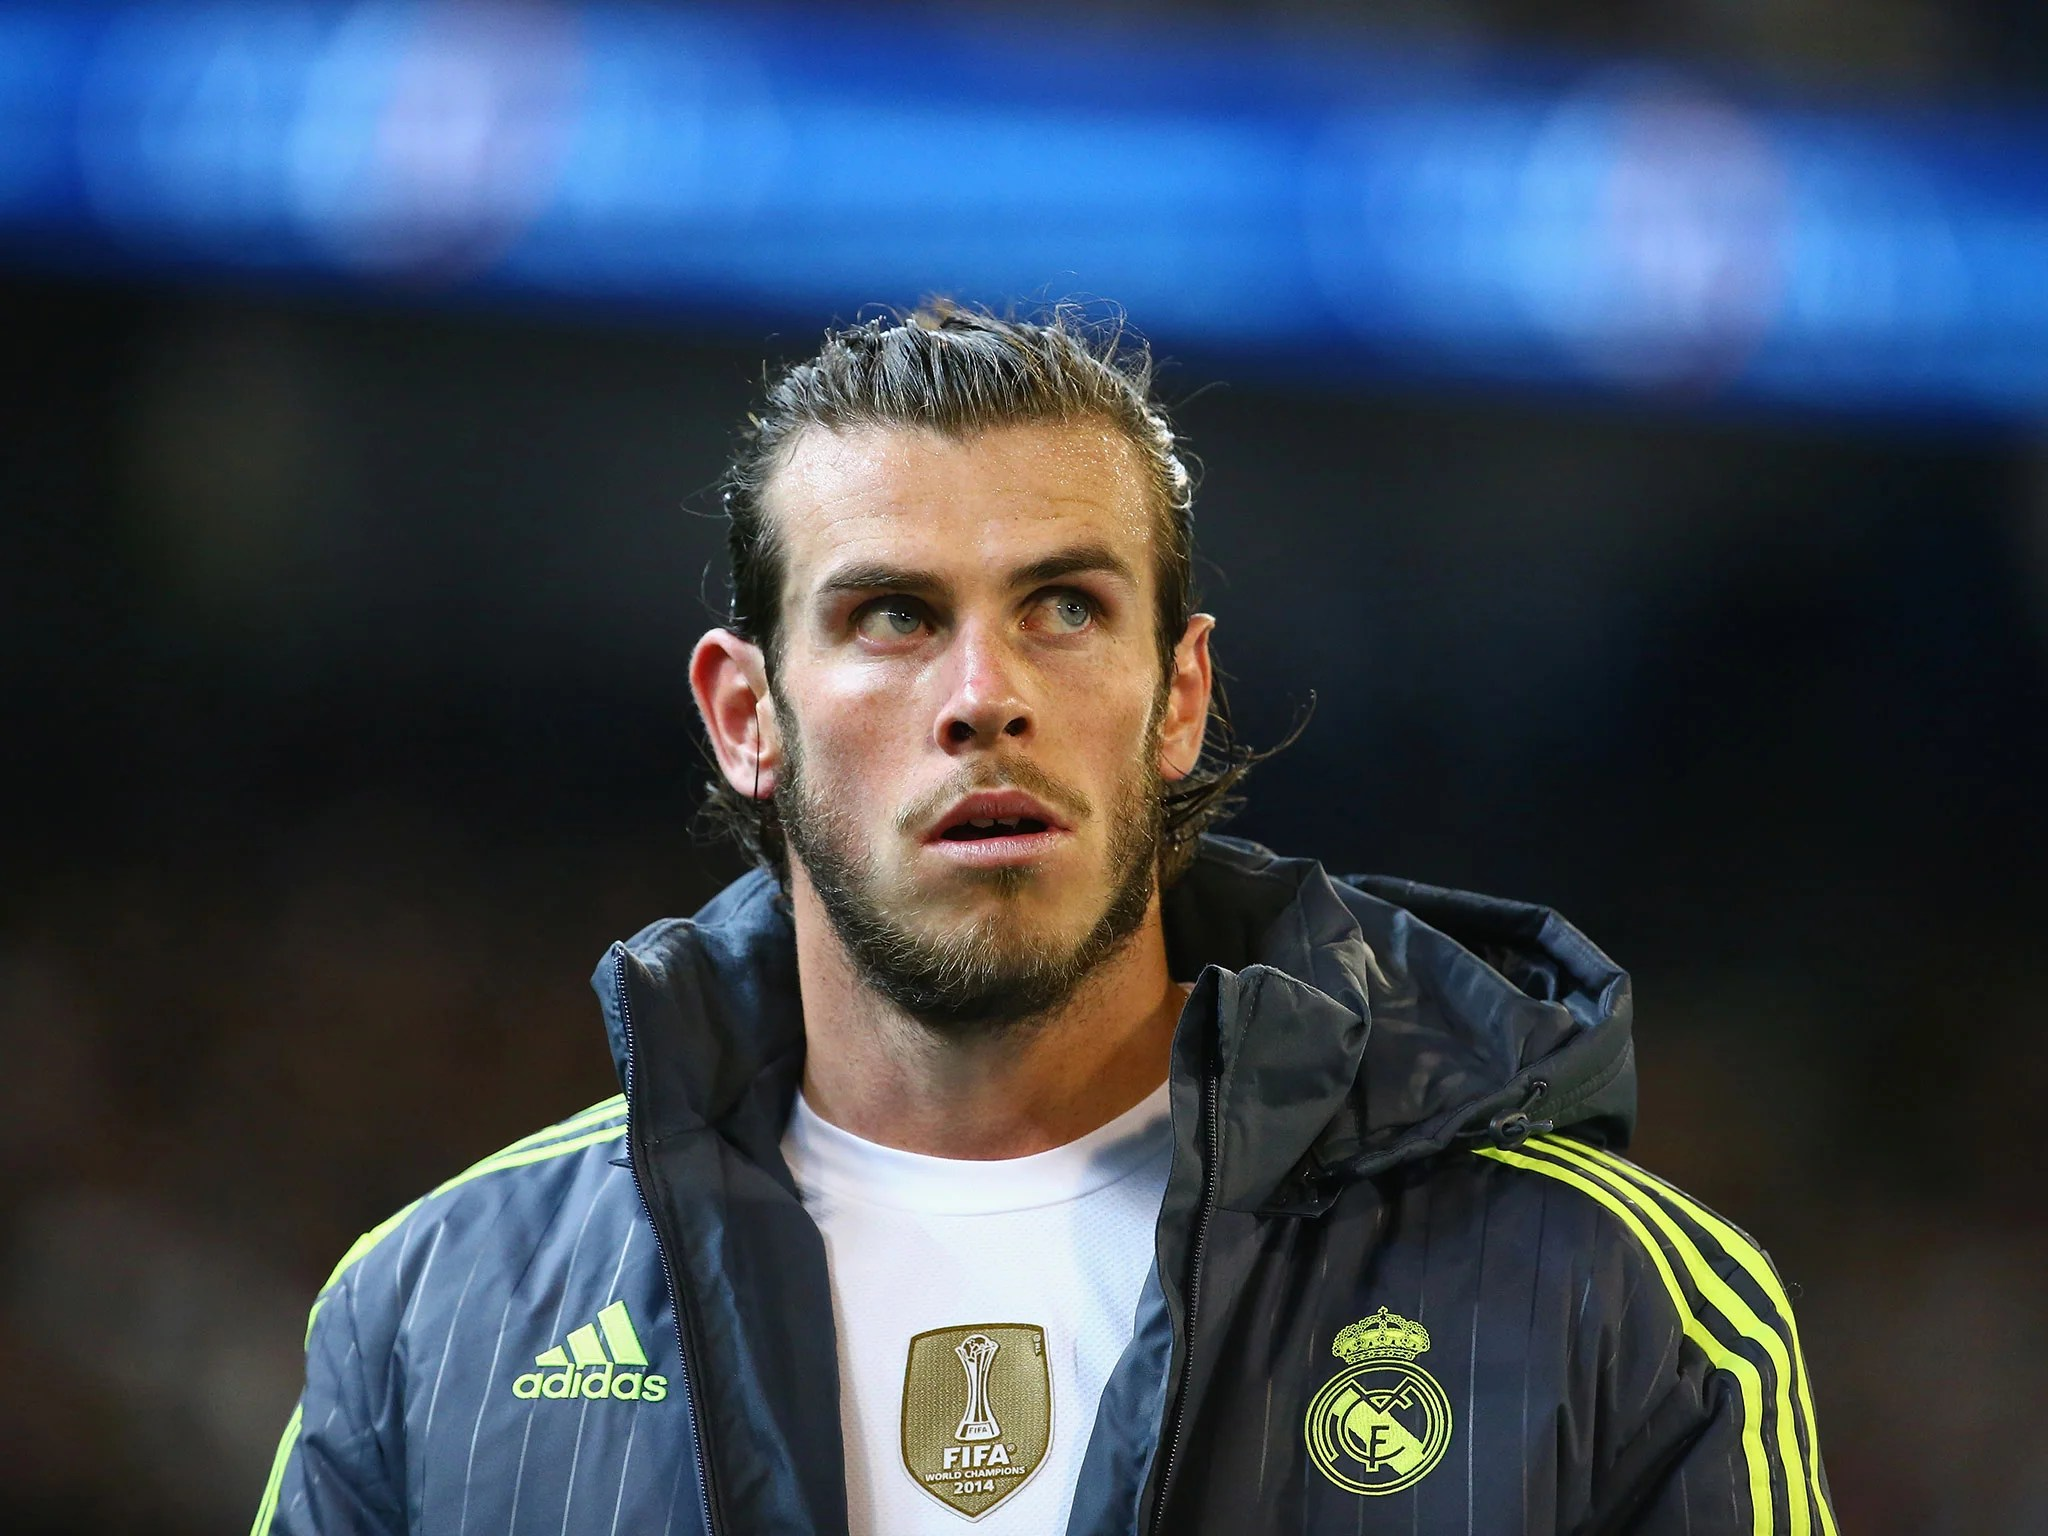 Gareth Bale To Manchester United Chris Coleman Not